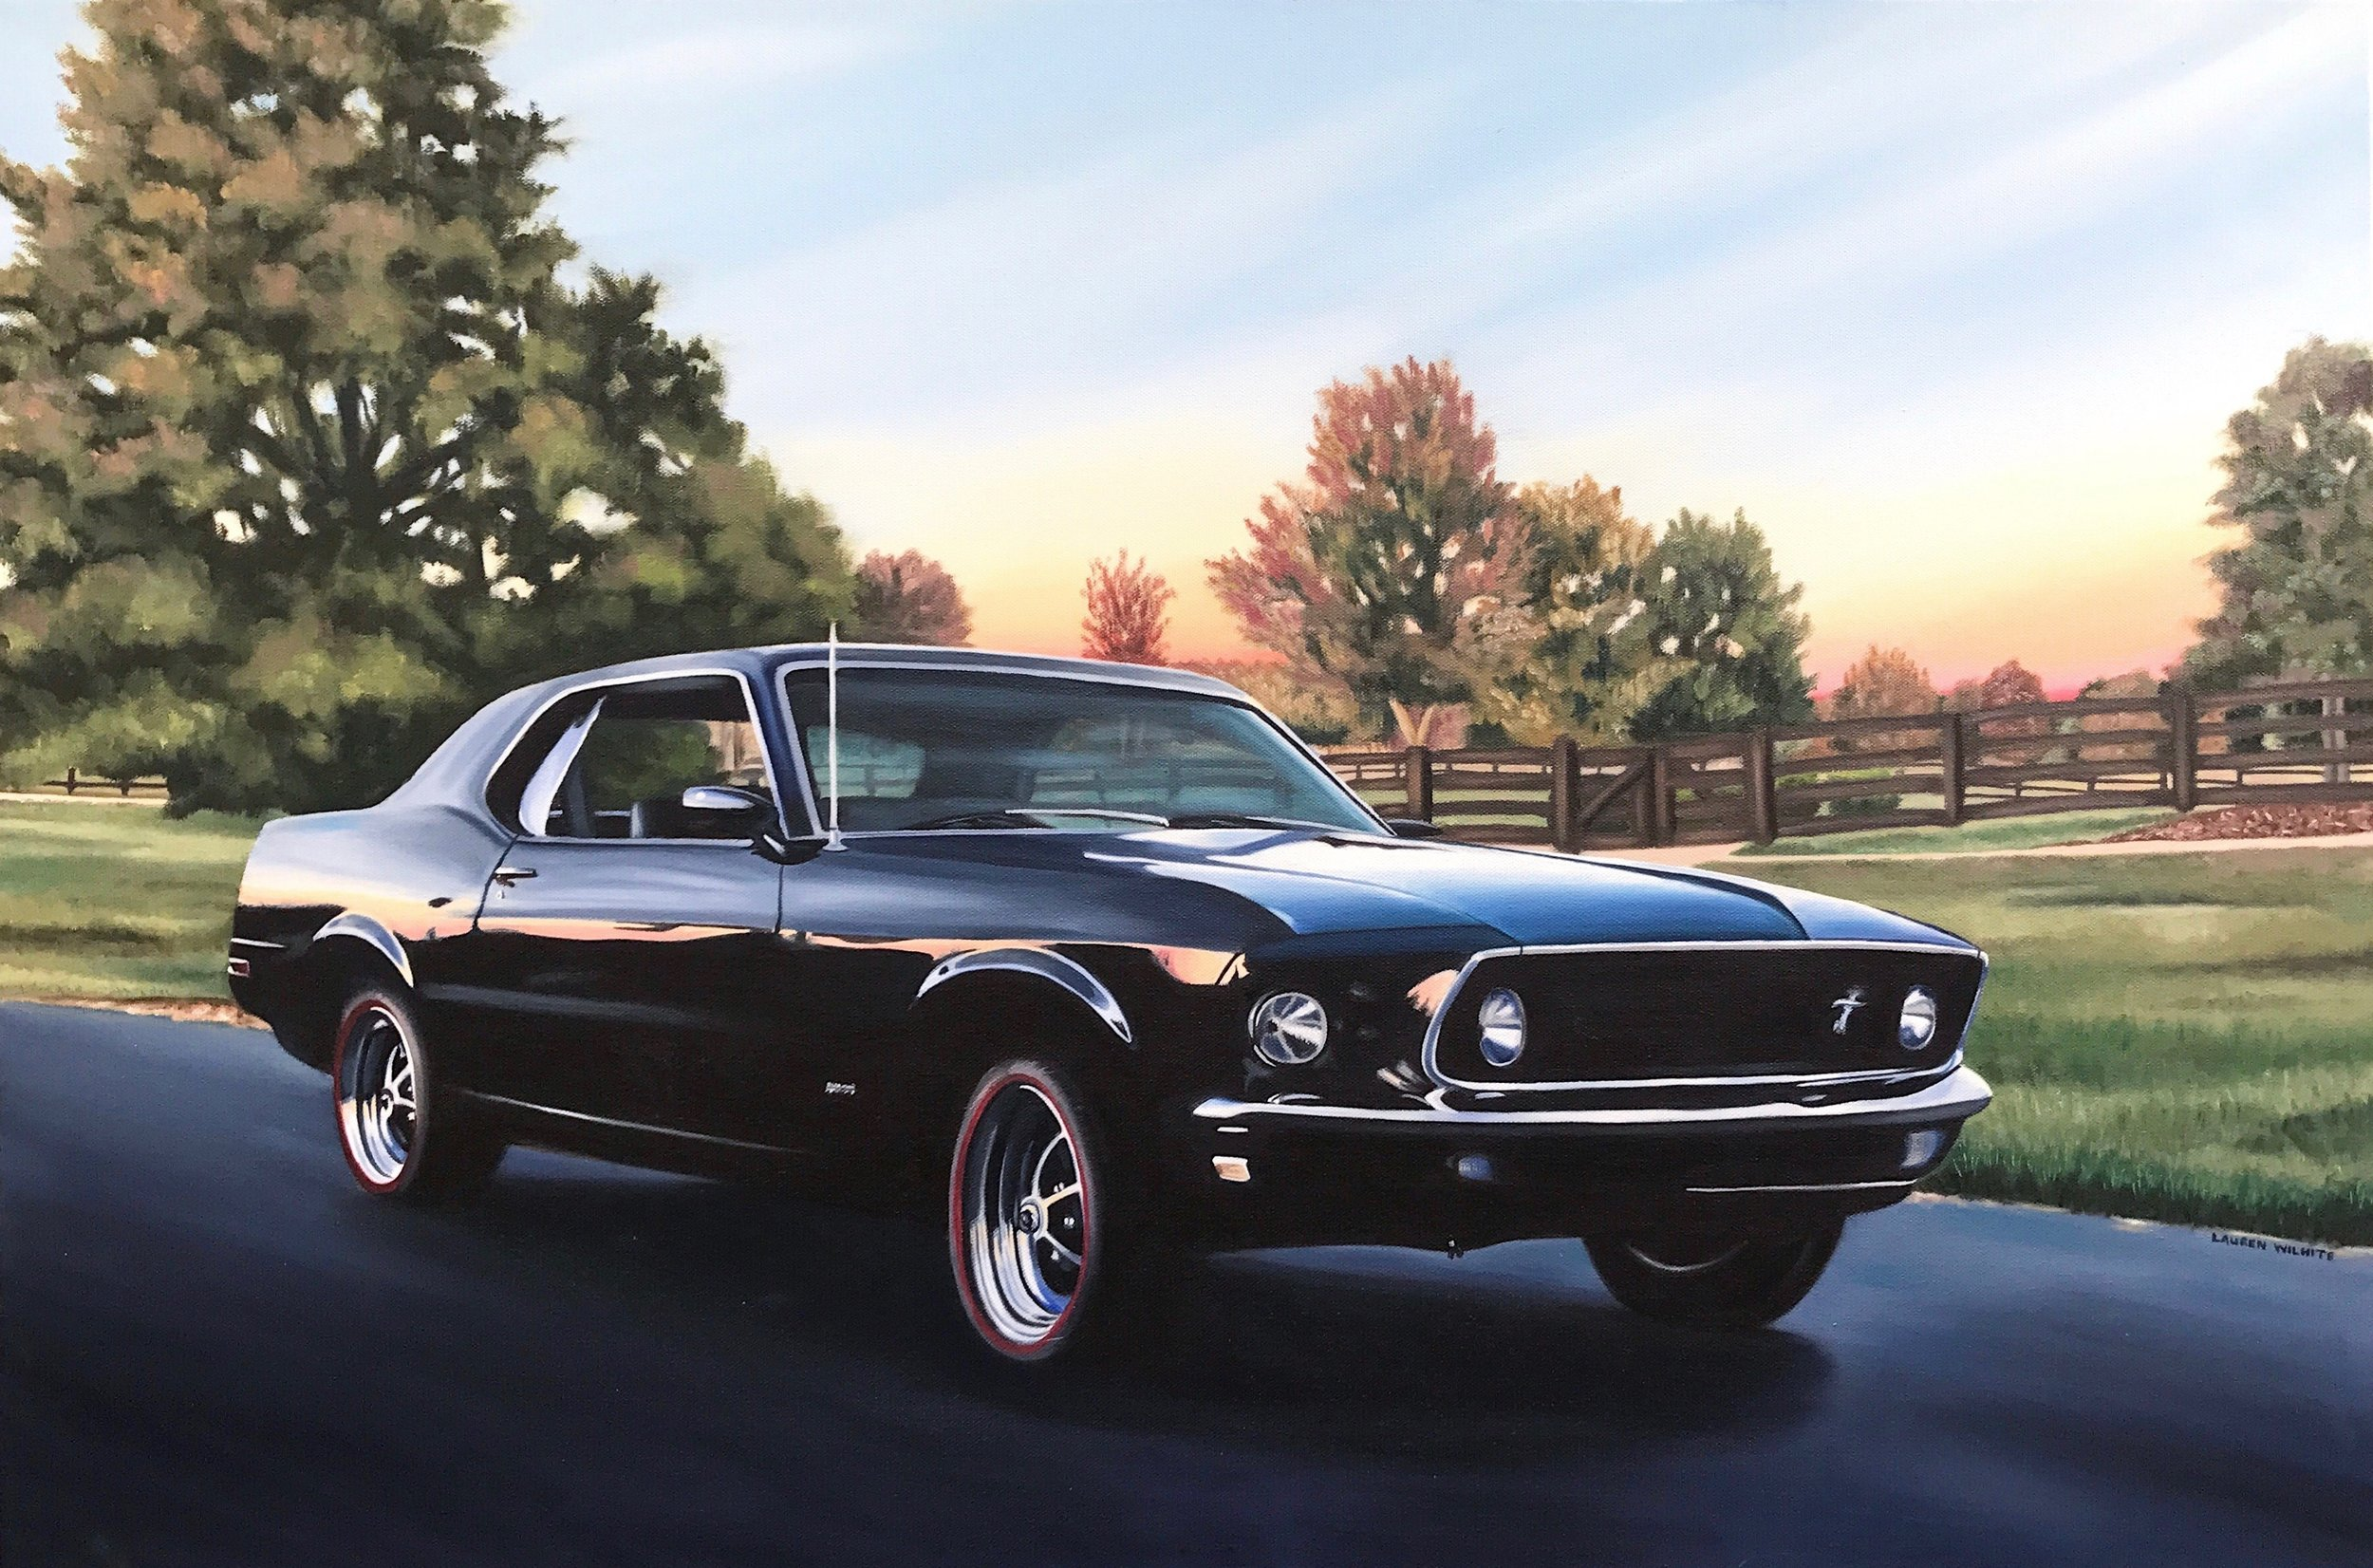 """Mustang, 36""""x24"""", Oil Paint on Canvas, 2017"""